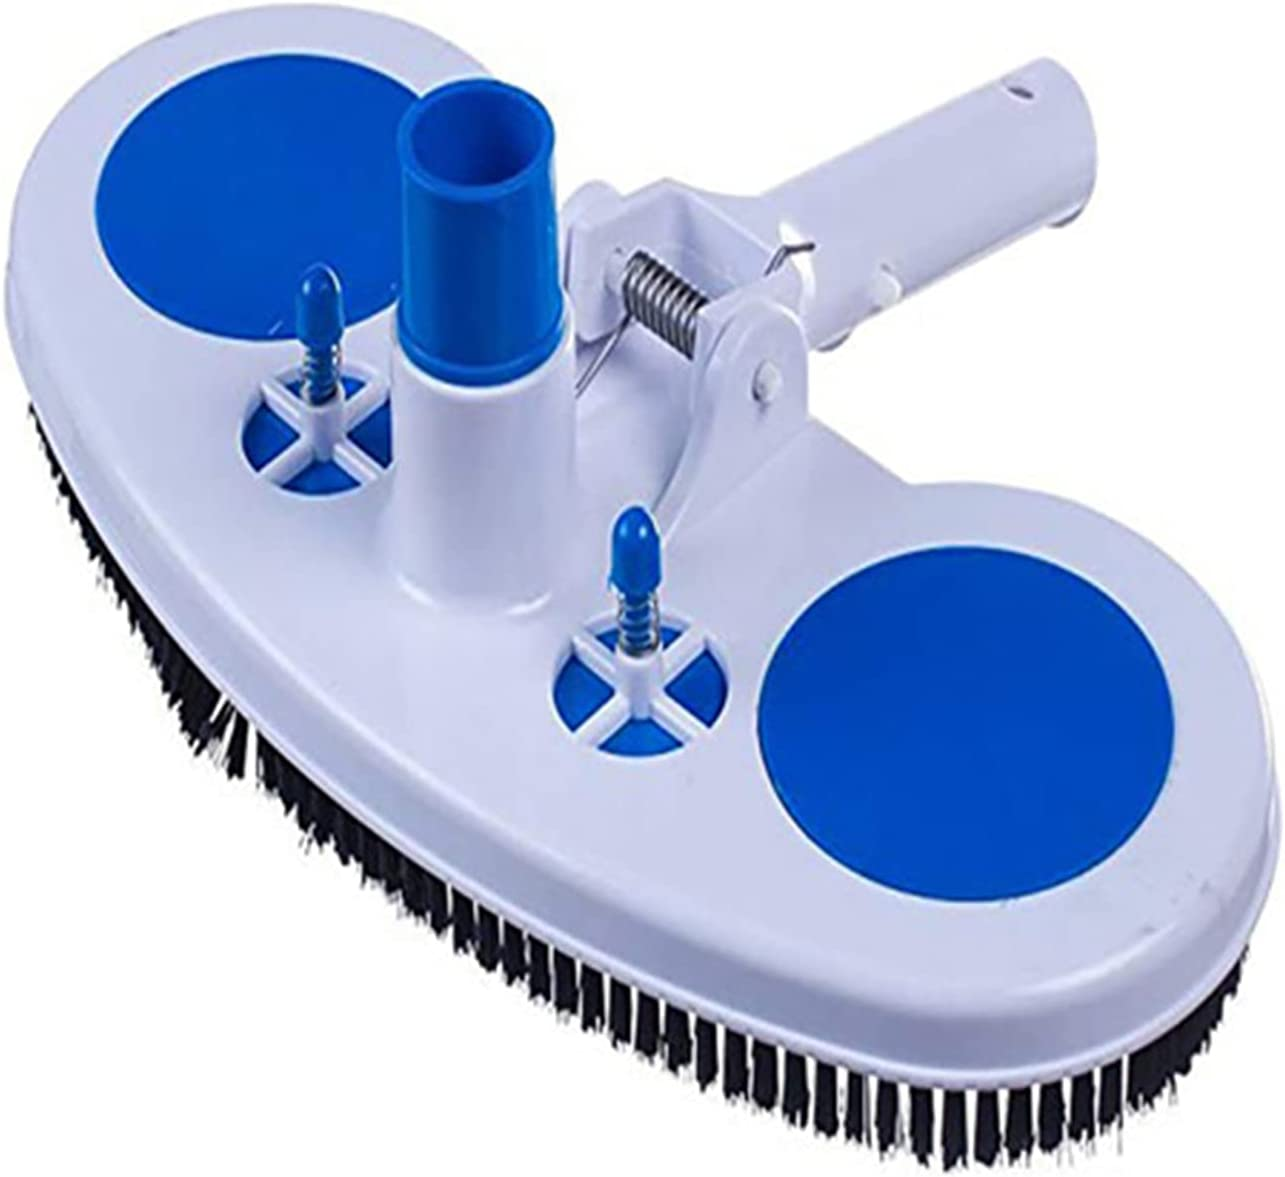 Washranp Max 75% OFF online shopping Pool Vacuum Head Replacement Suction Cleaner